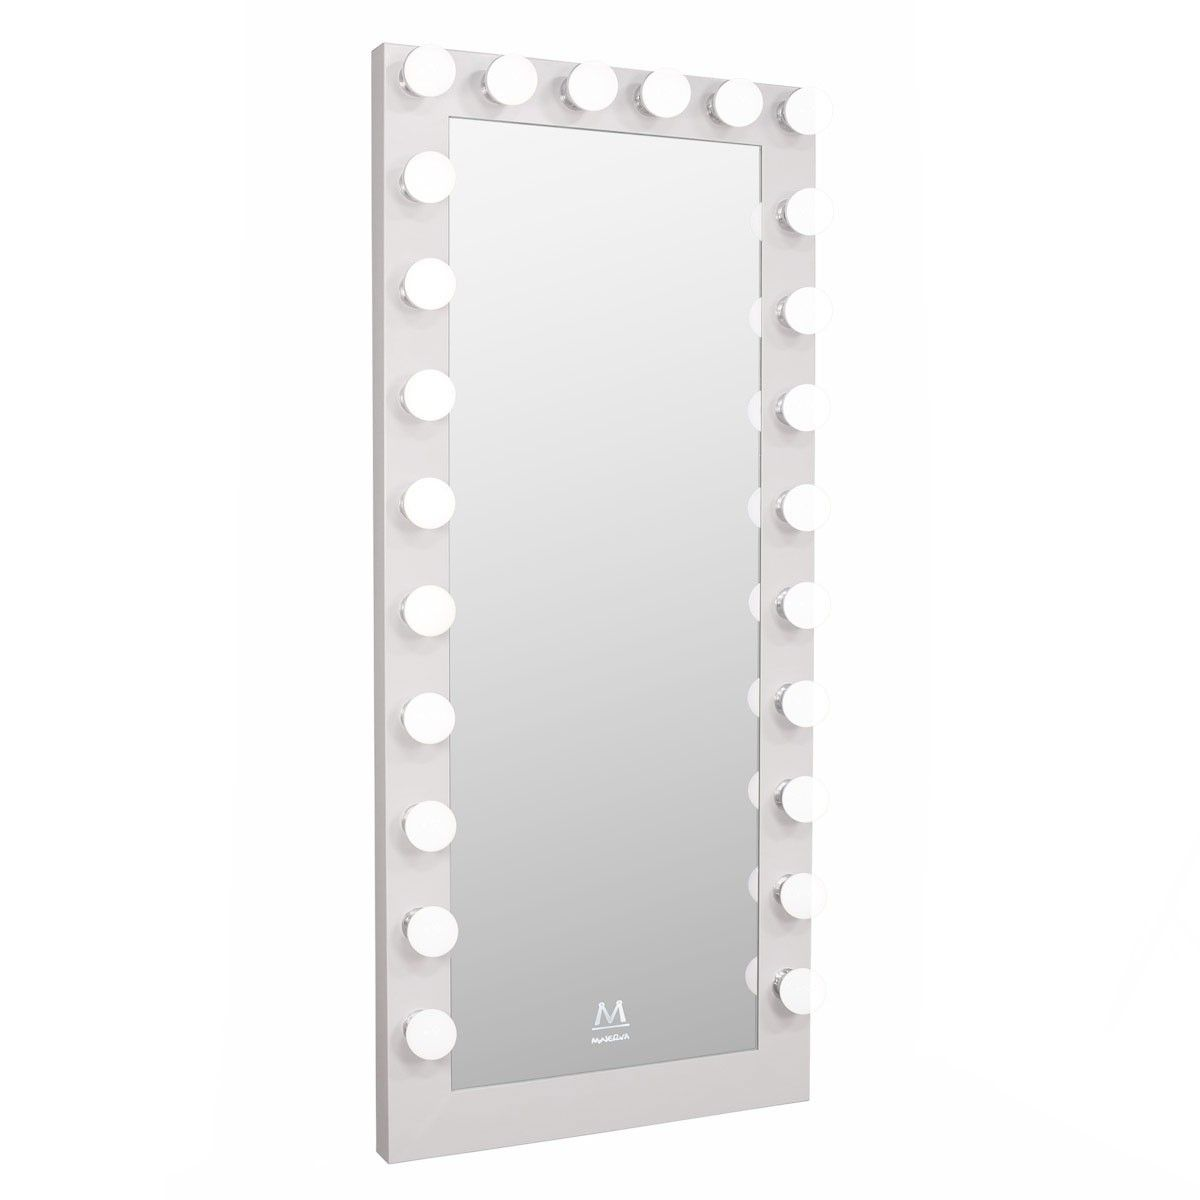 Paramount Full Length Hollywood Makeup Led Vanity Mirror In White